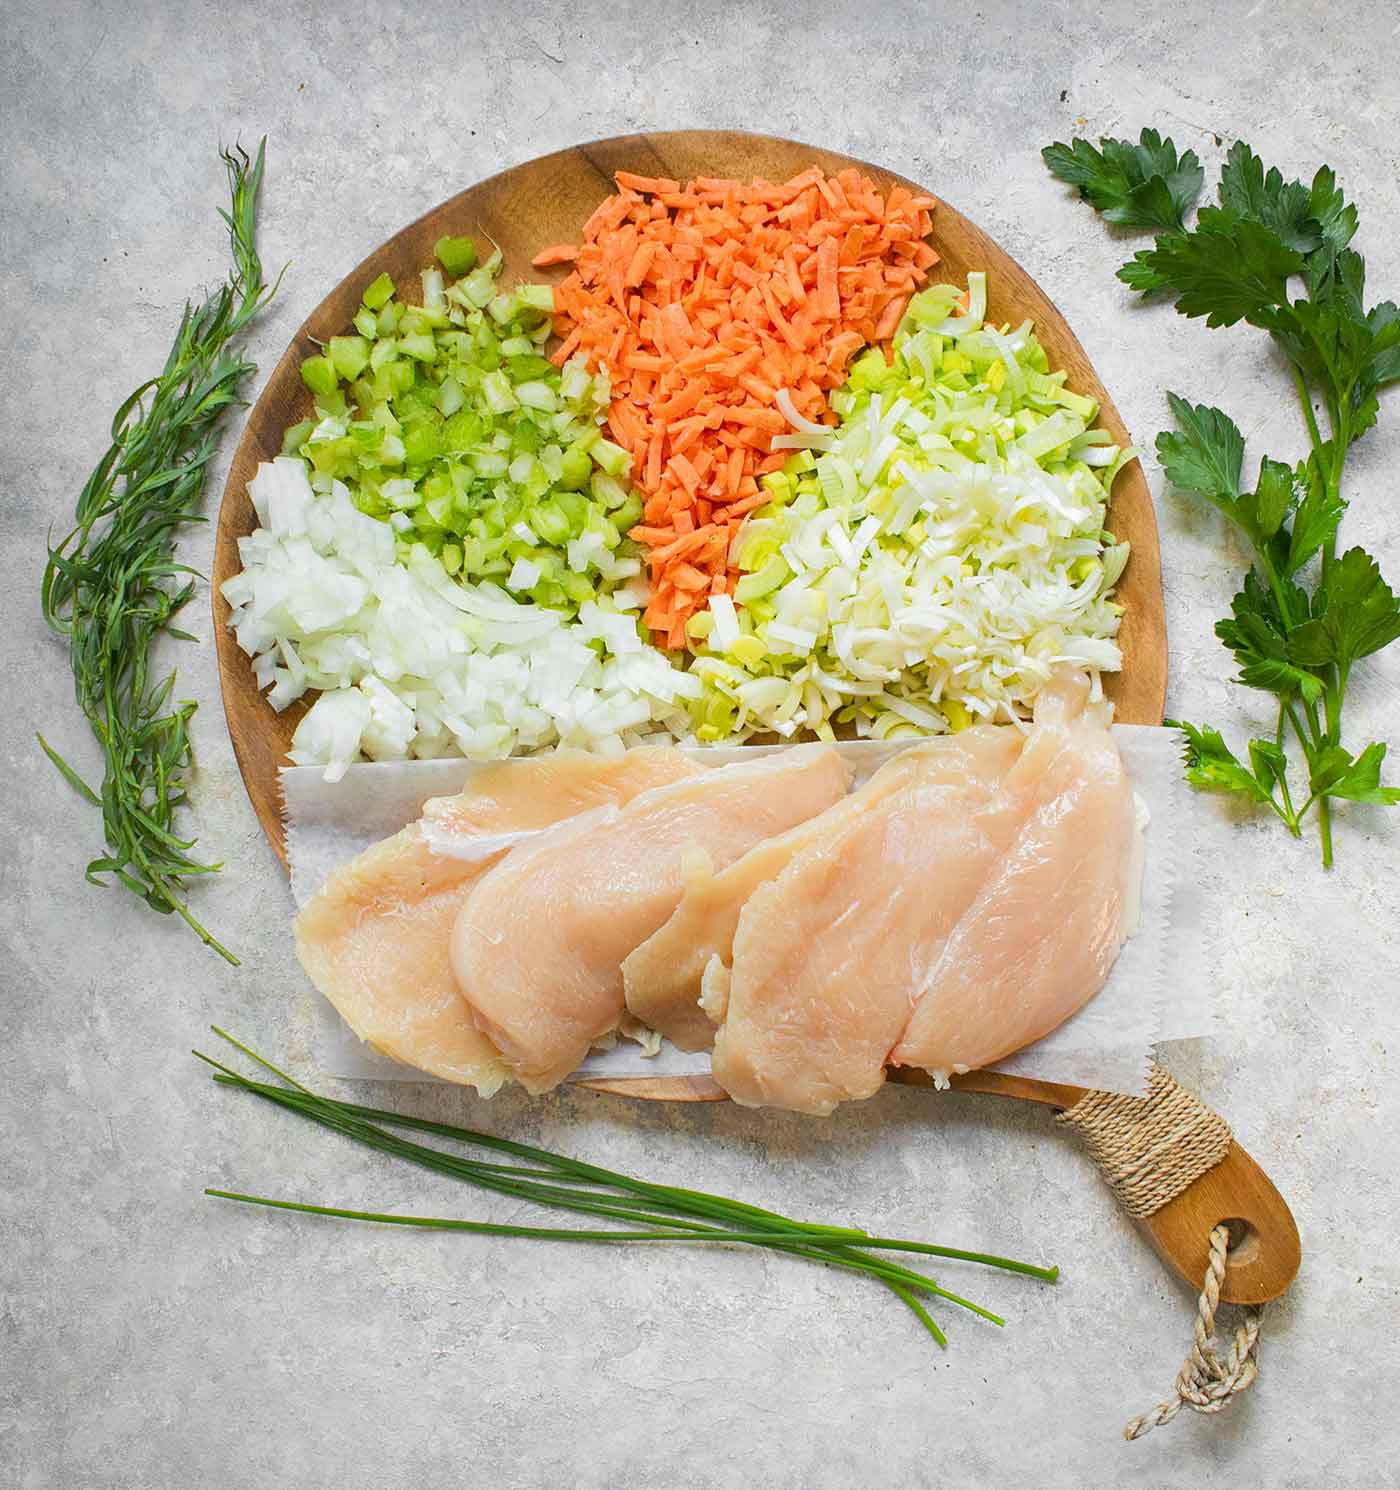 Ingredients for Chicken and Dumplings on a wooden cutting board